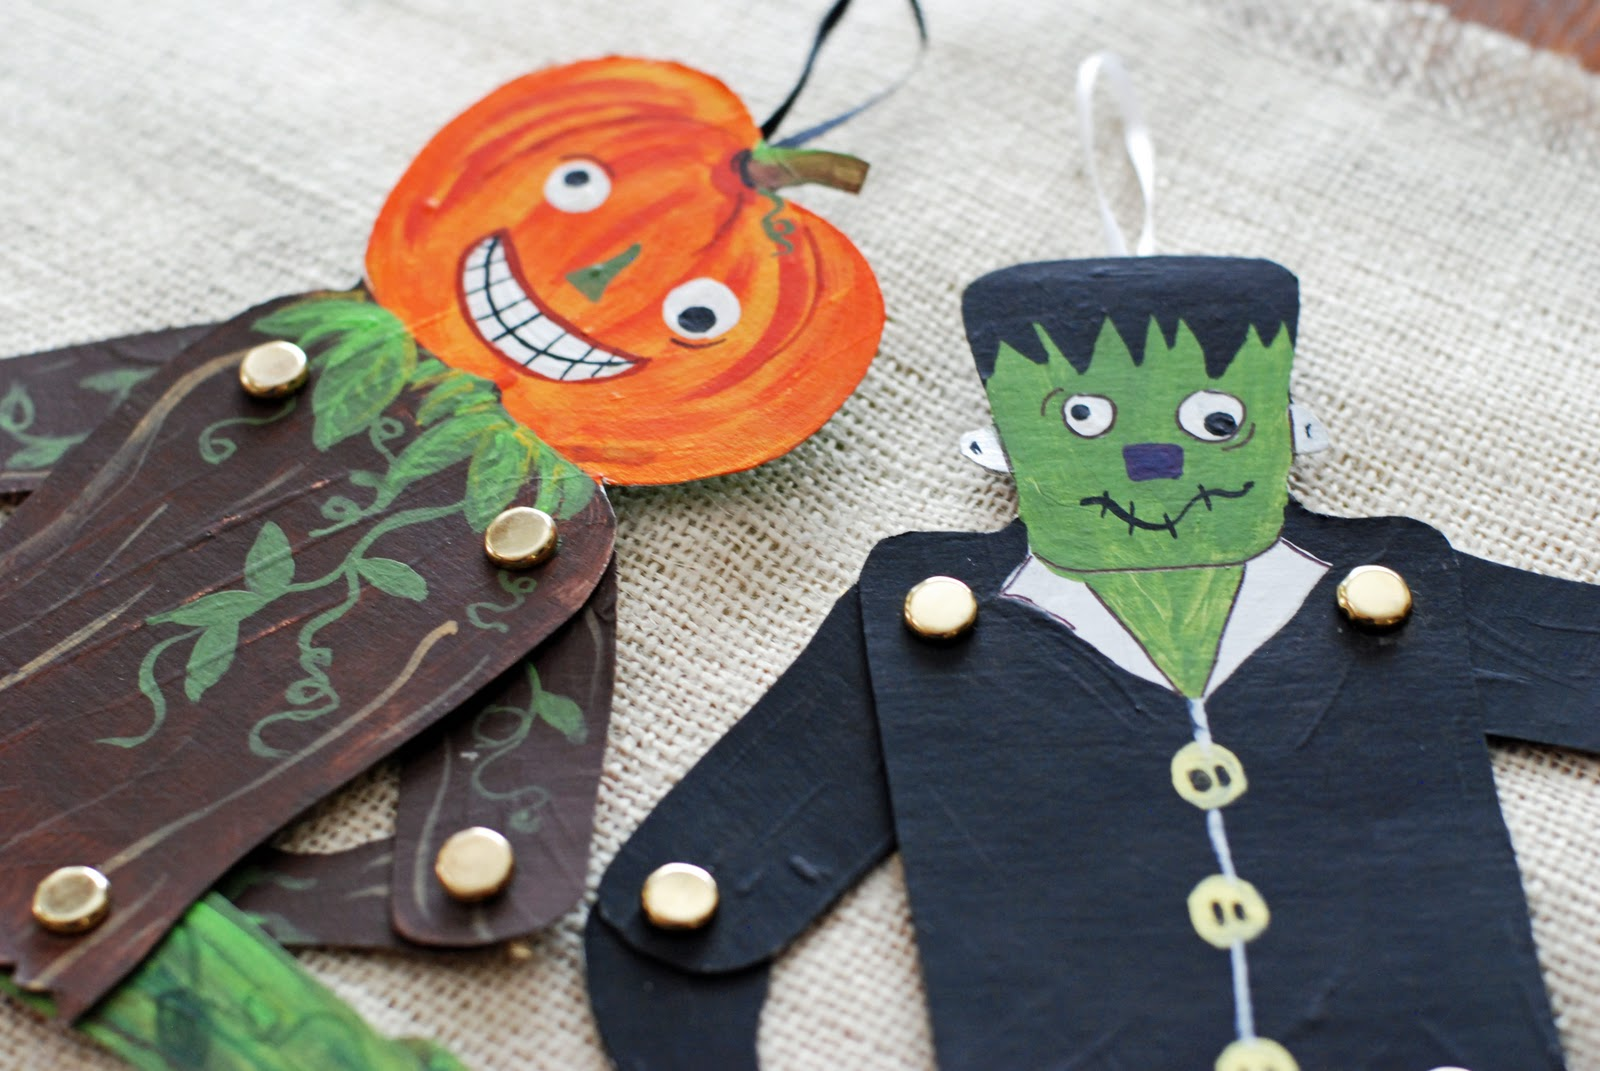 halloween arts and crafts ideas for children that artist jumping jacks 8096